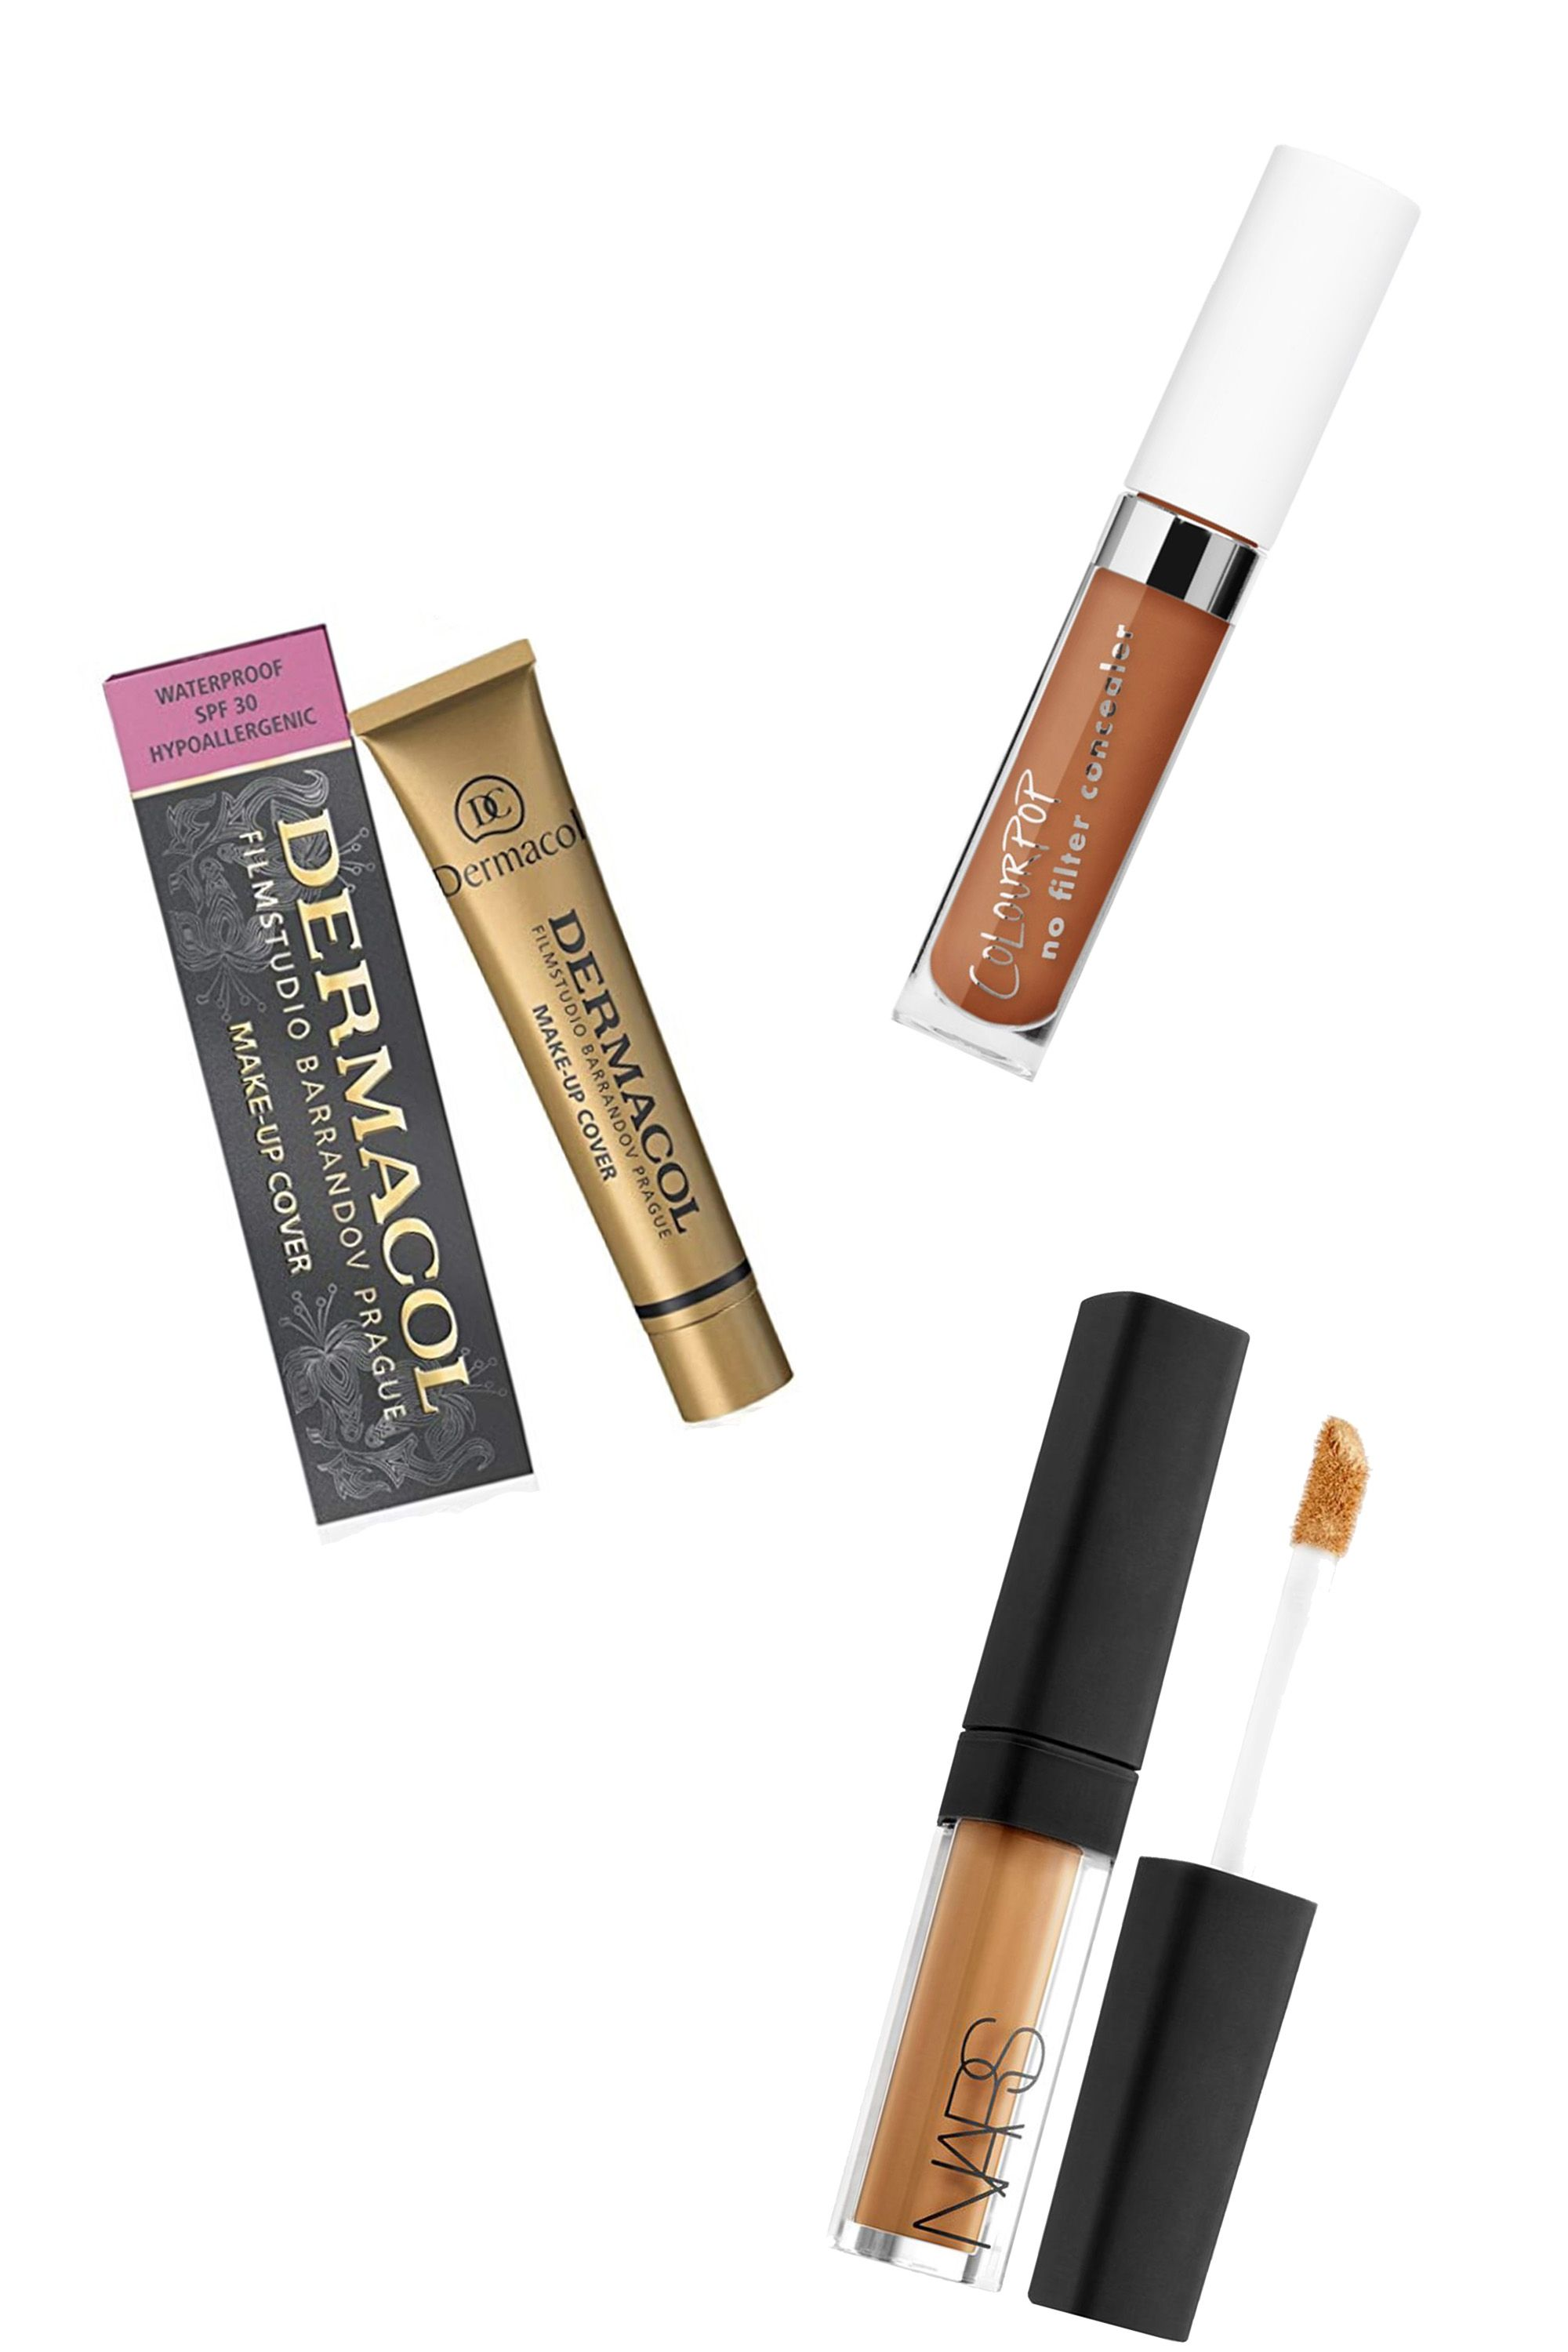 Makeup That Covers Up Tattoos - 7 Product Recommendations From ...